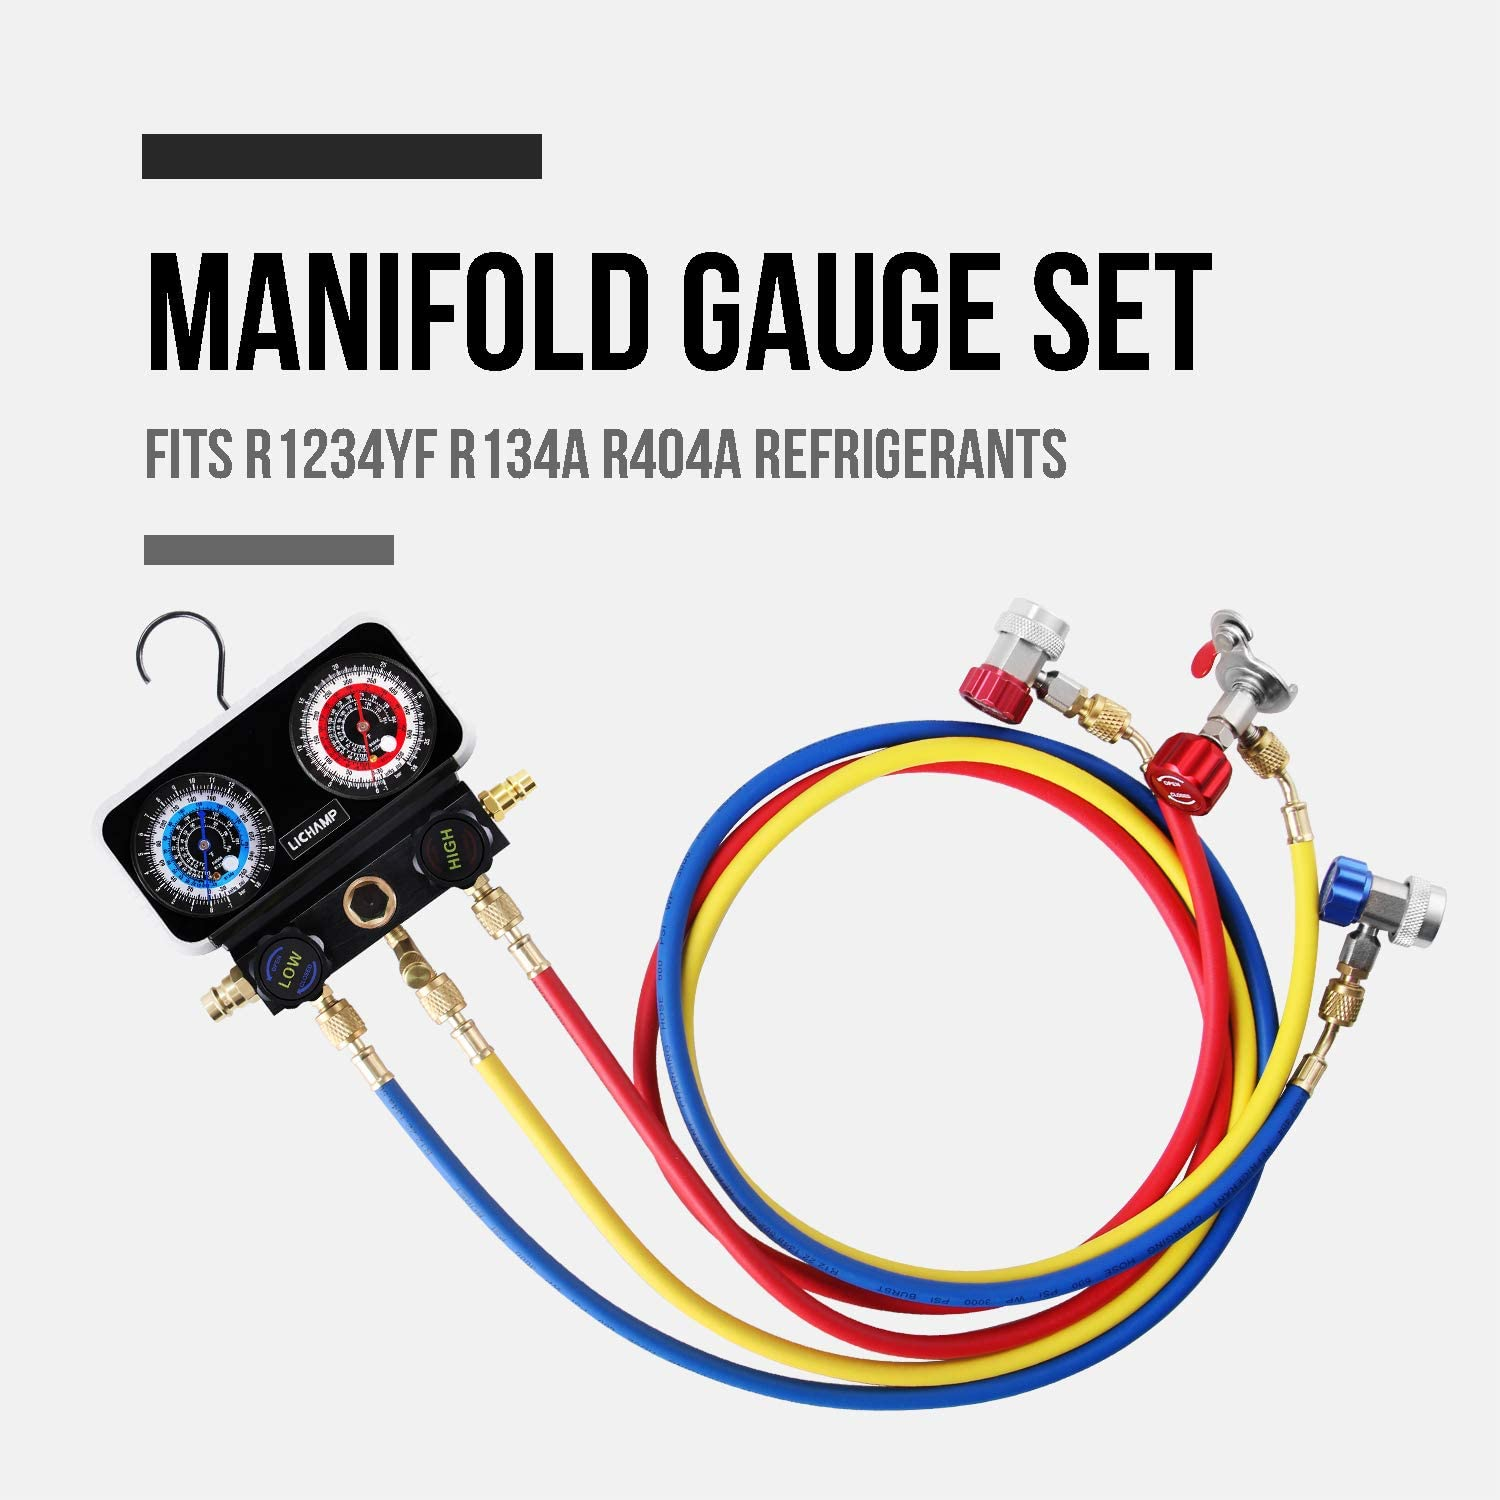 Gauges Works on Car Freon Charging and Evacuation Automotive 4 ...